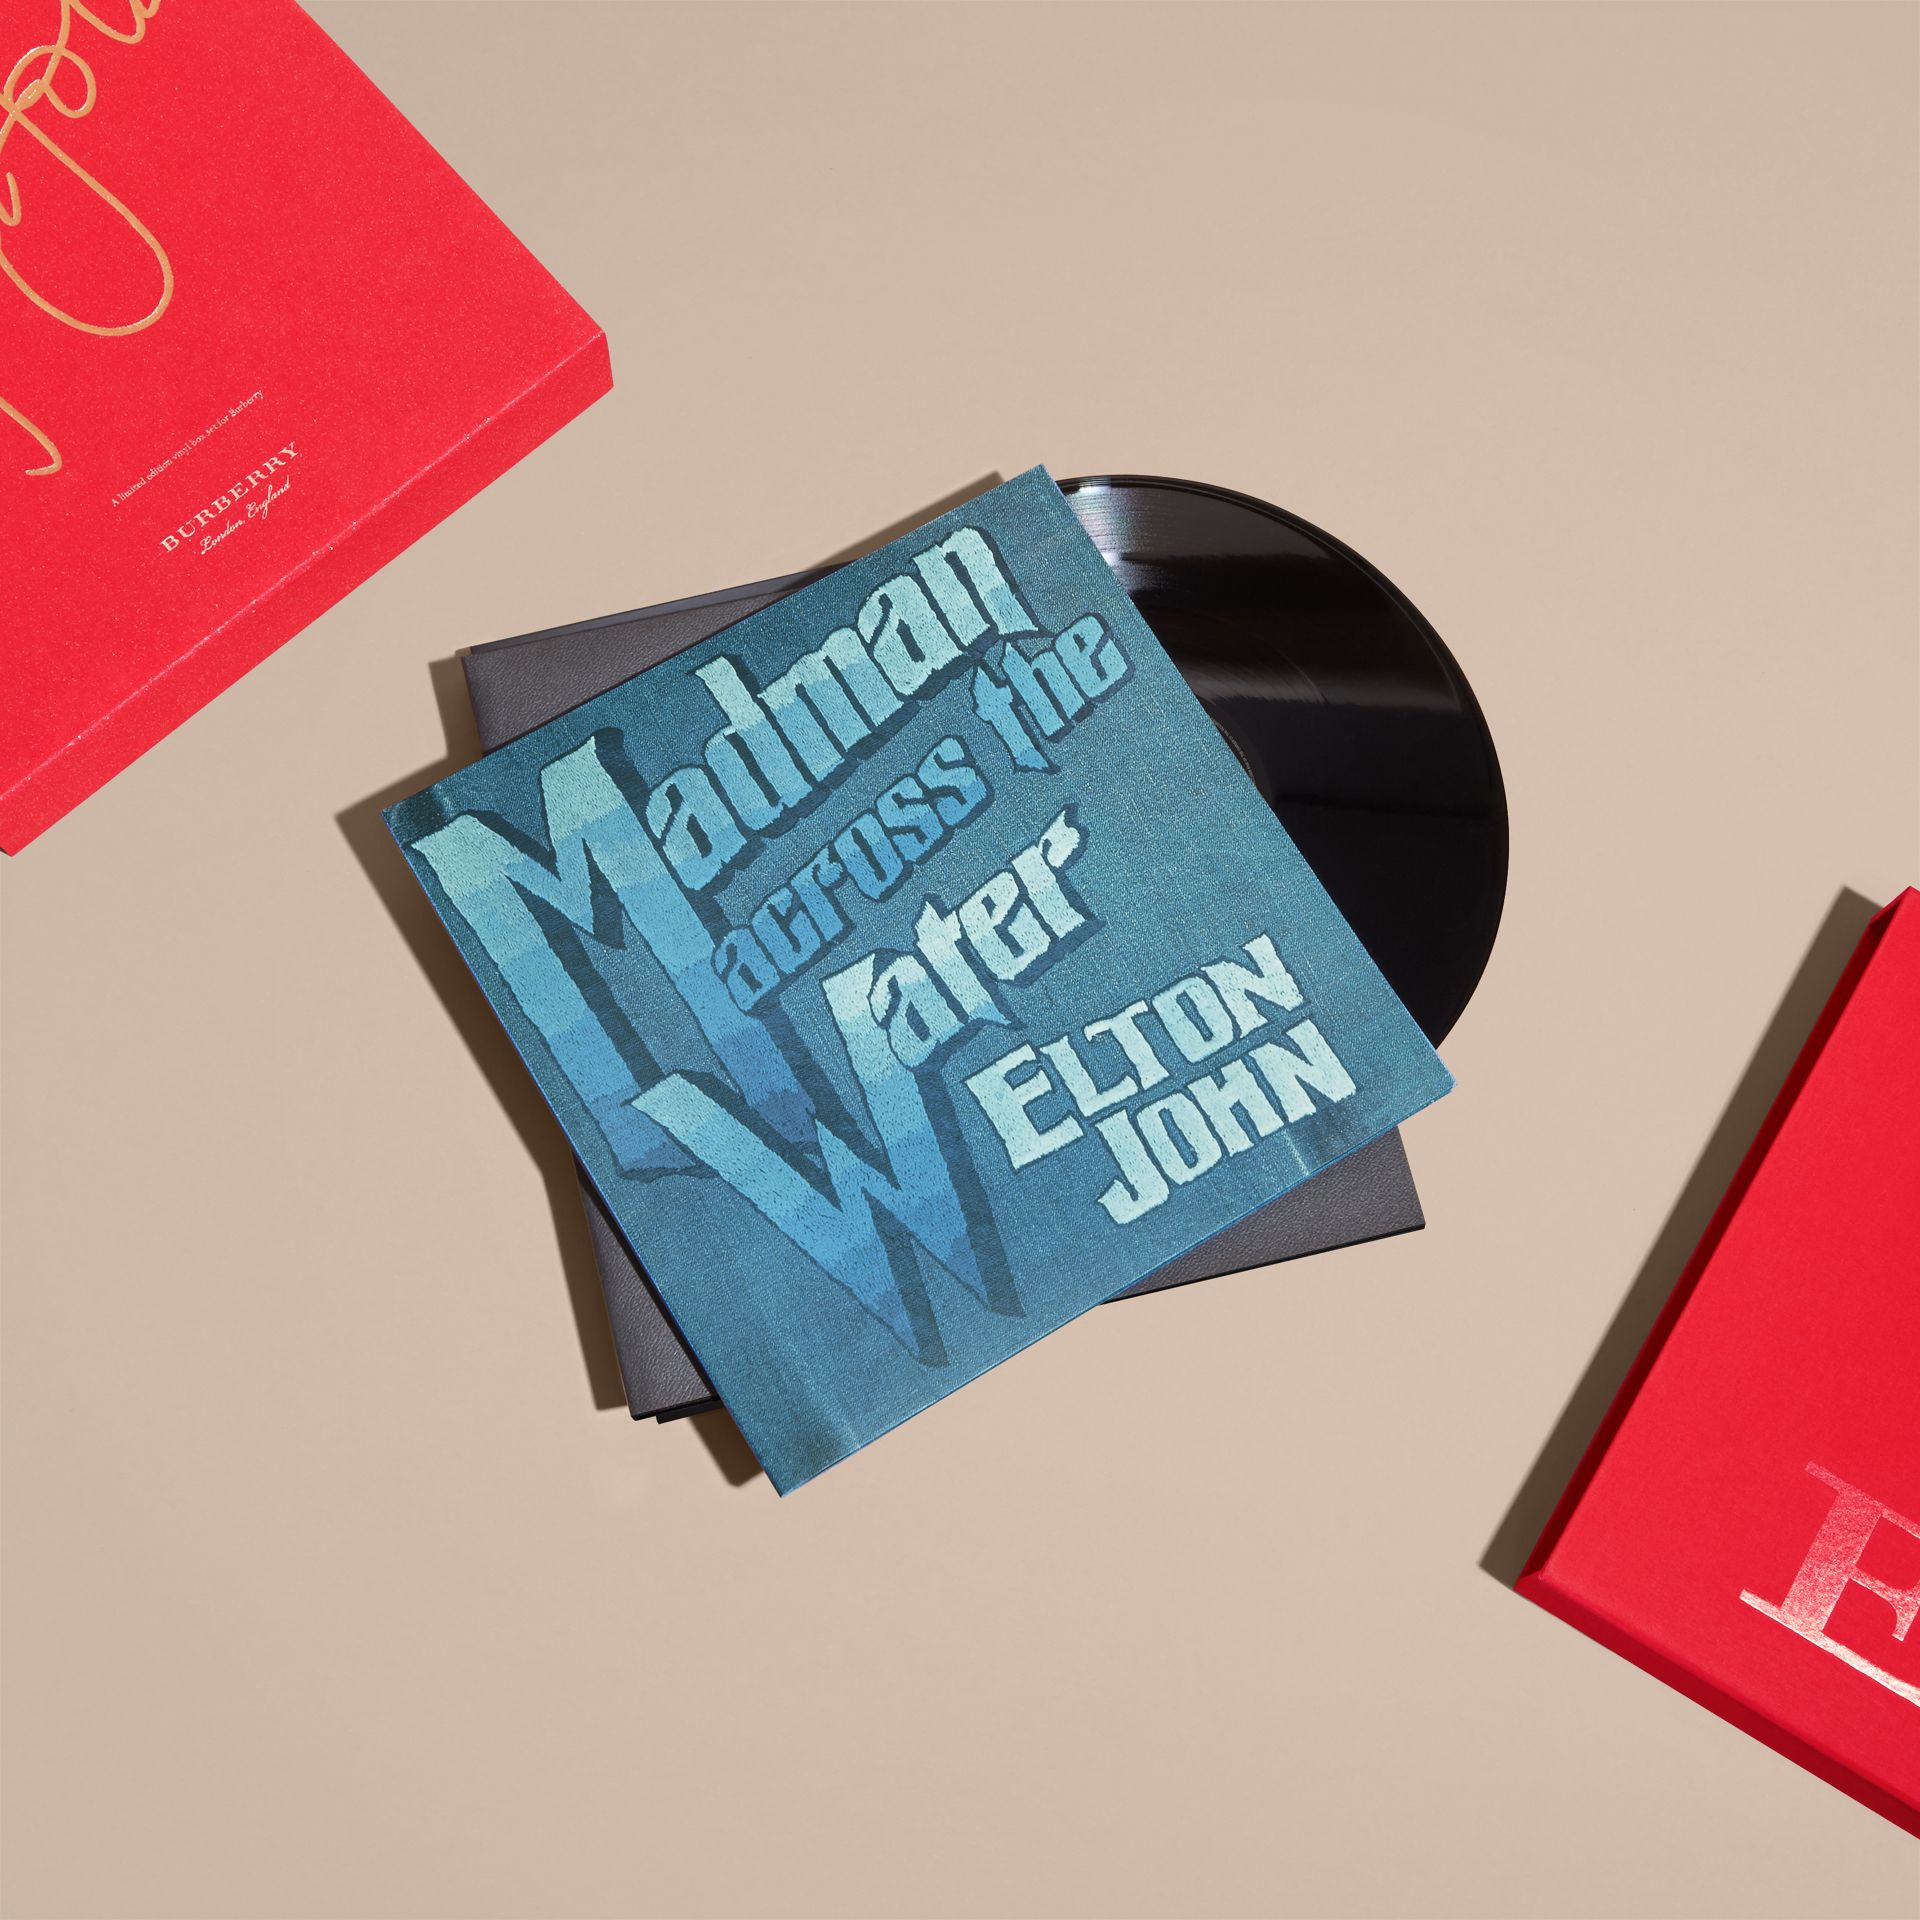 Multicolour Elton John: A Limited Edition Vinyl Box Set for Burberry - gallery image 5